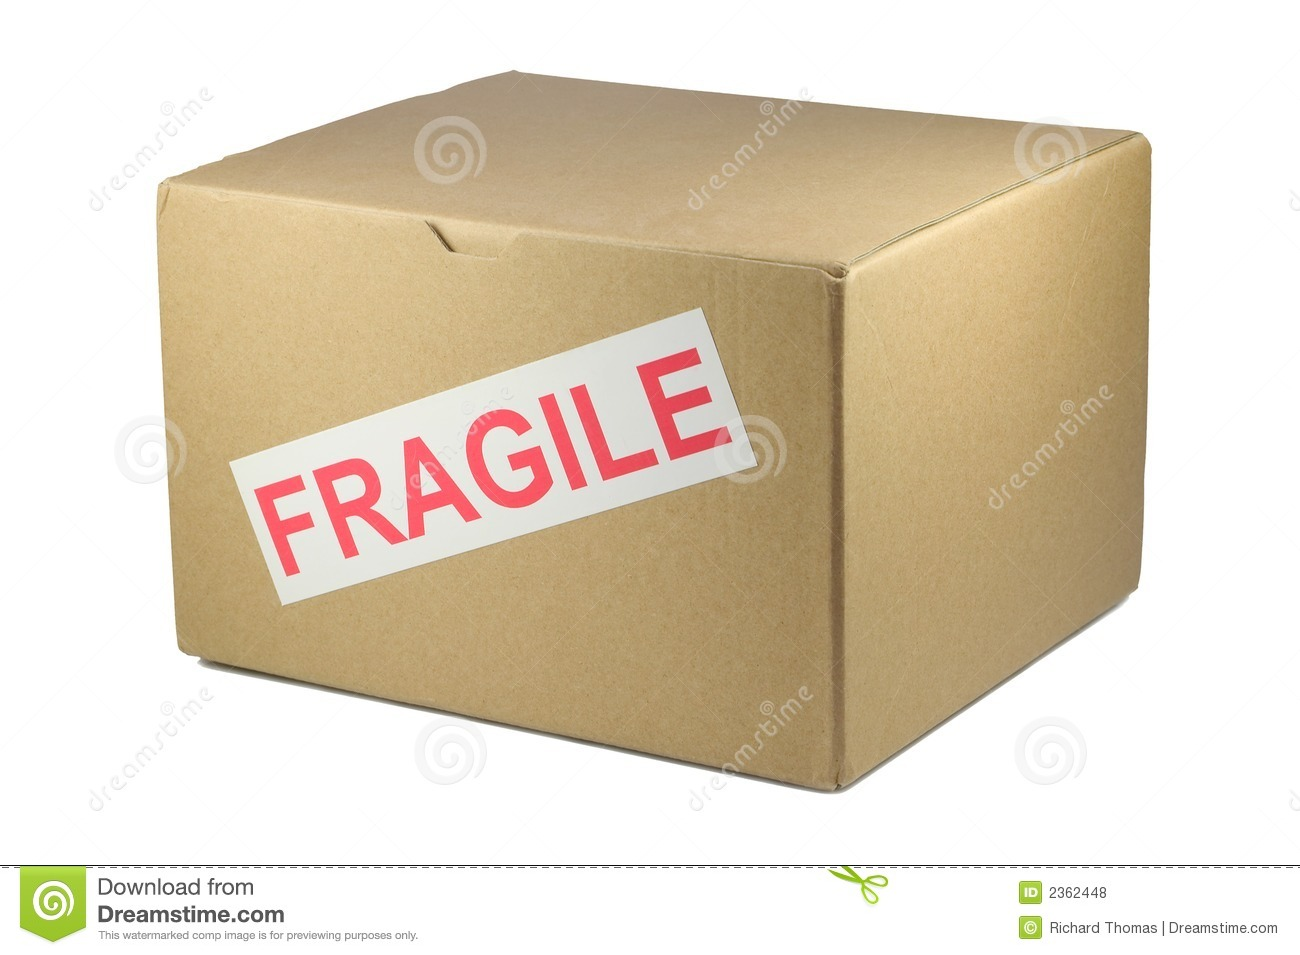 Fragile Box Royalty Free Stock Photos - Image: 2362448